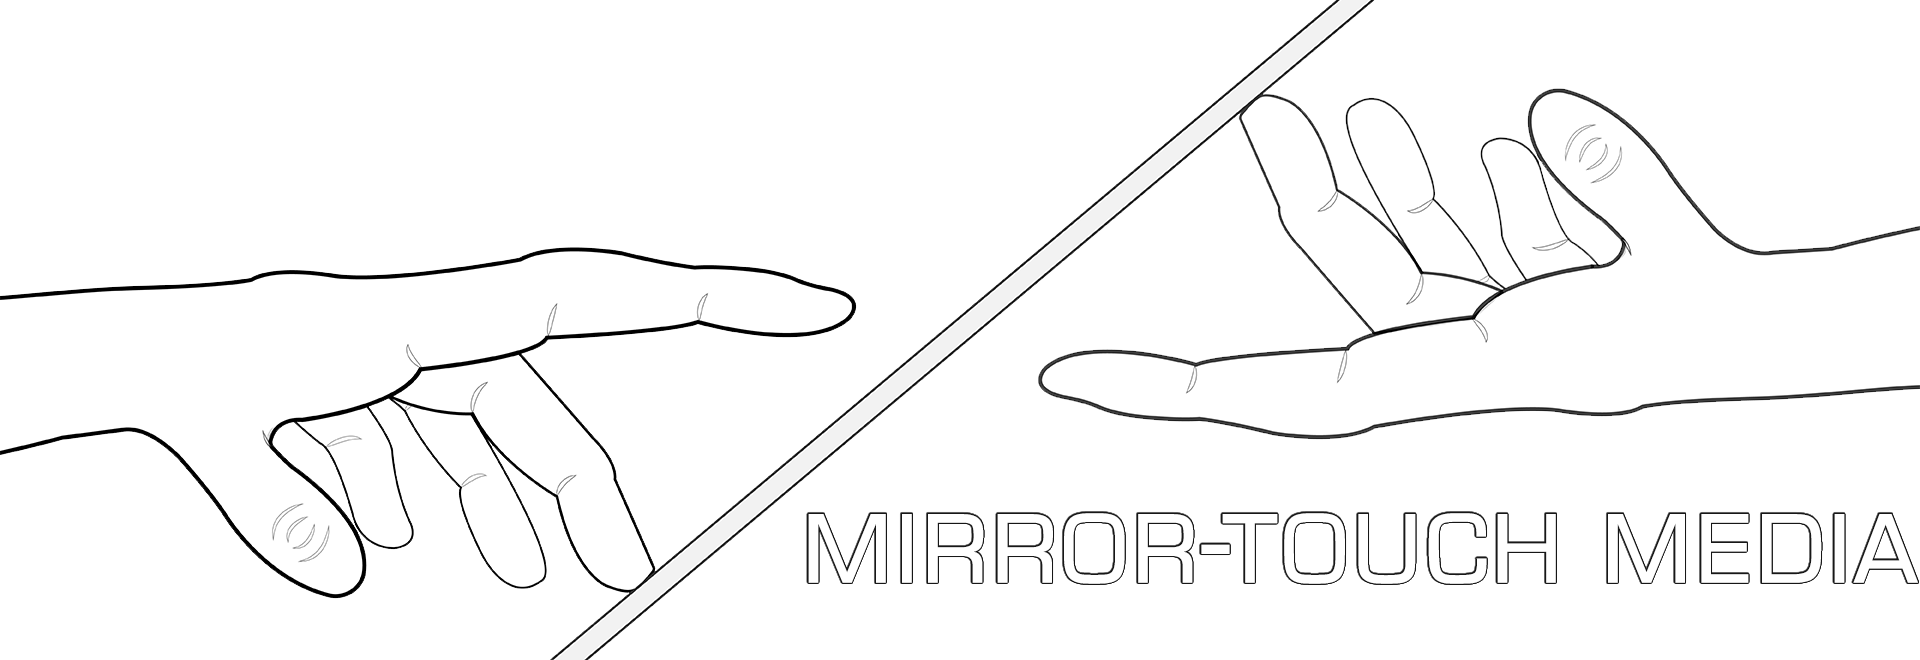 Mirror-Touch Media: Stories That Stick